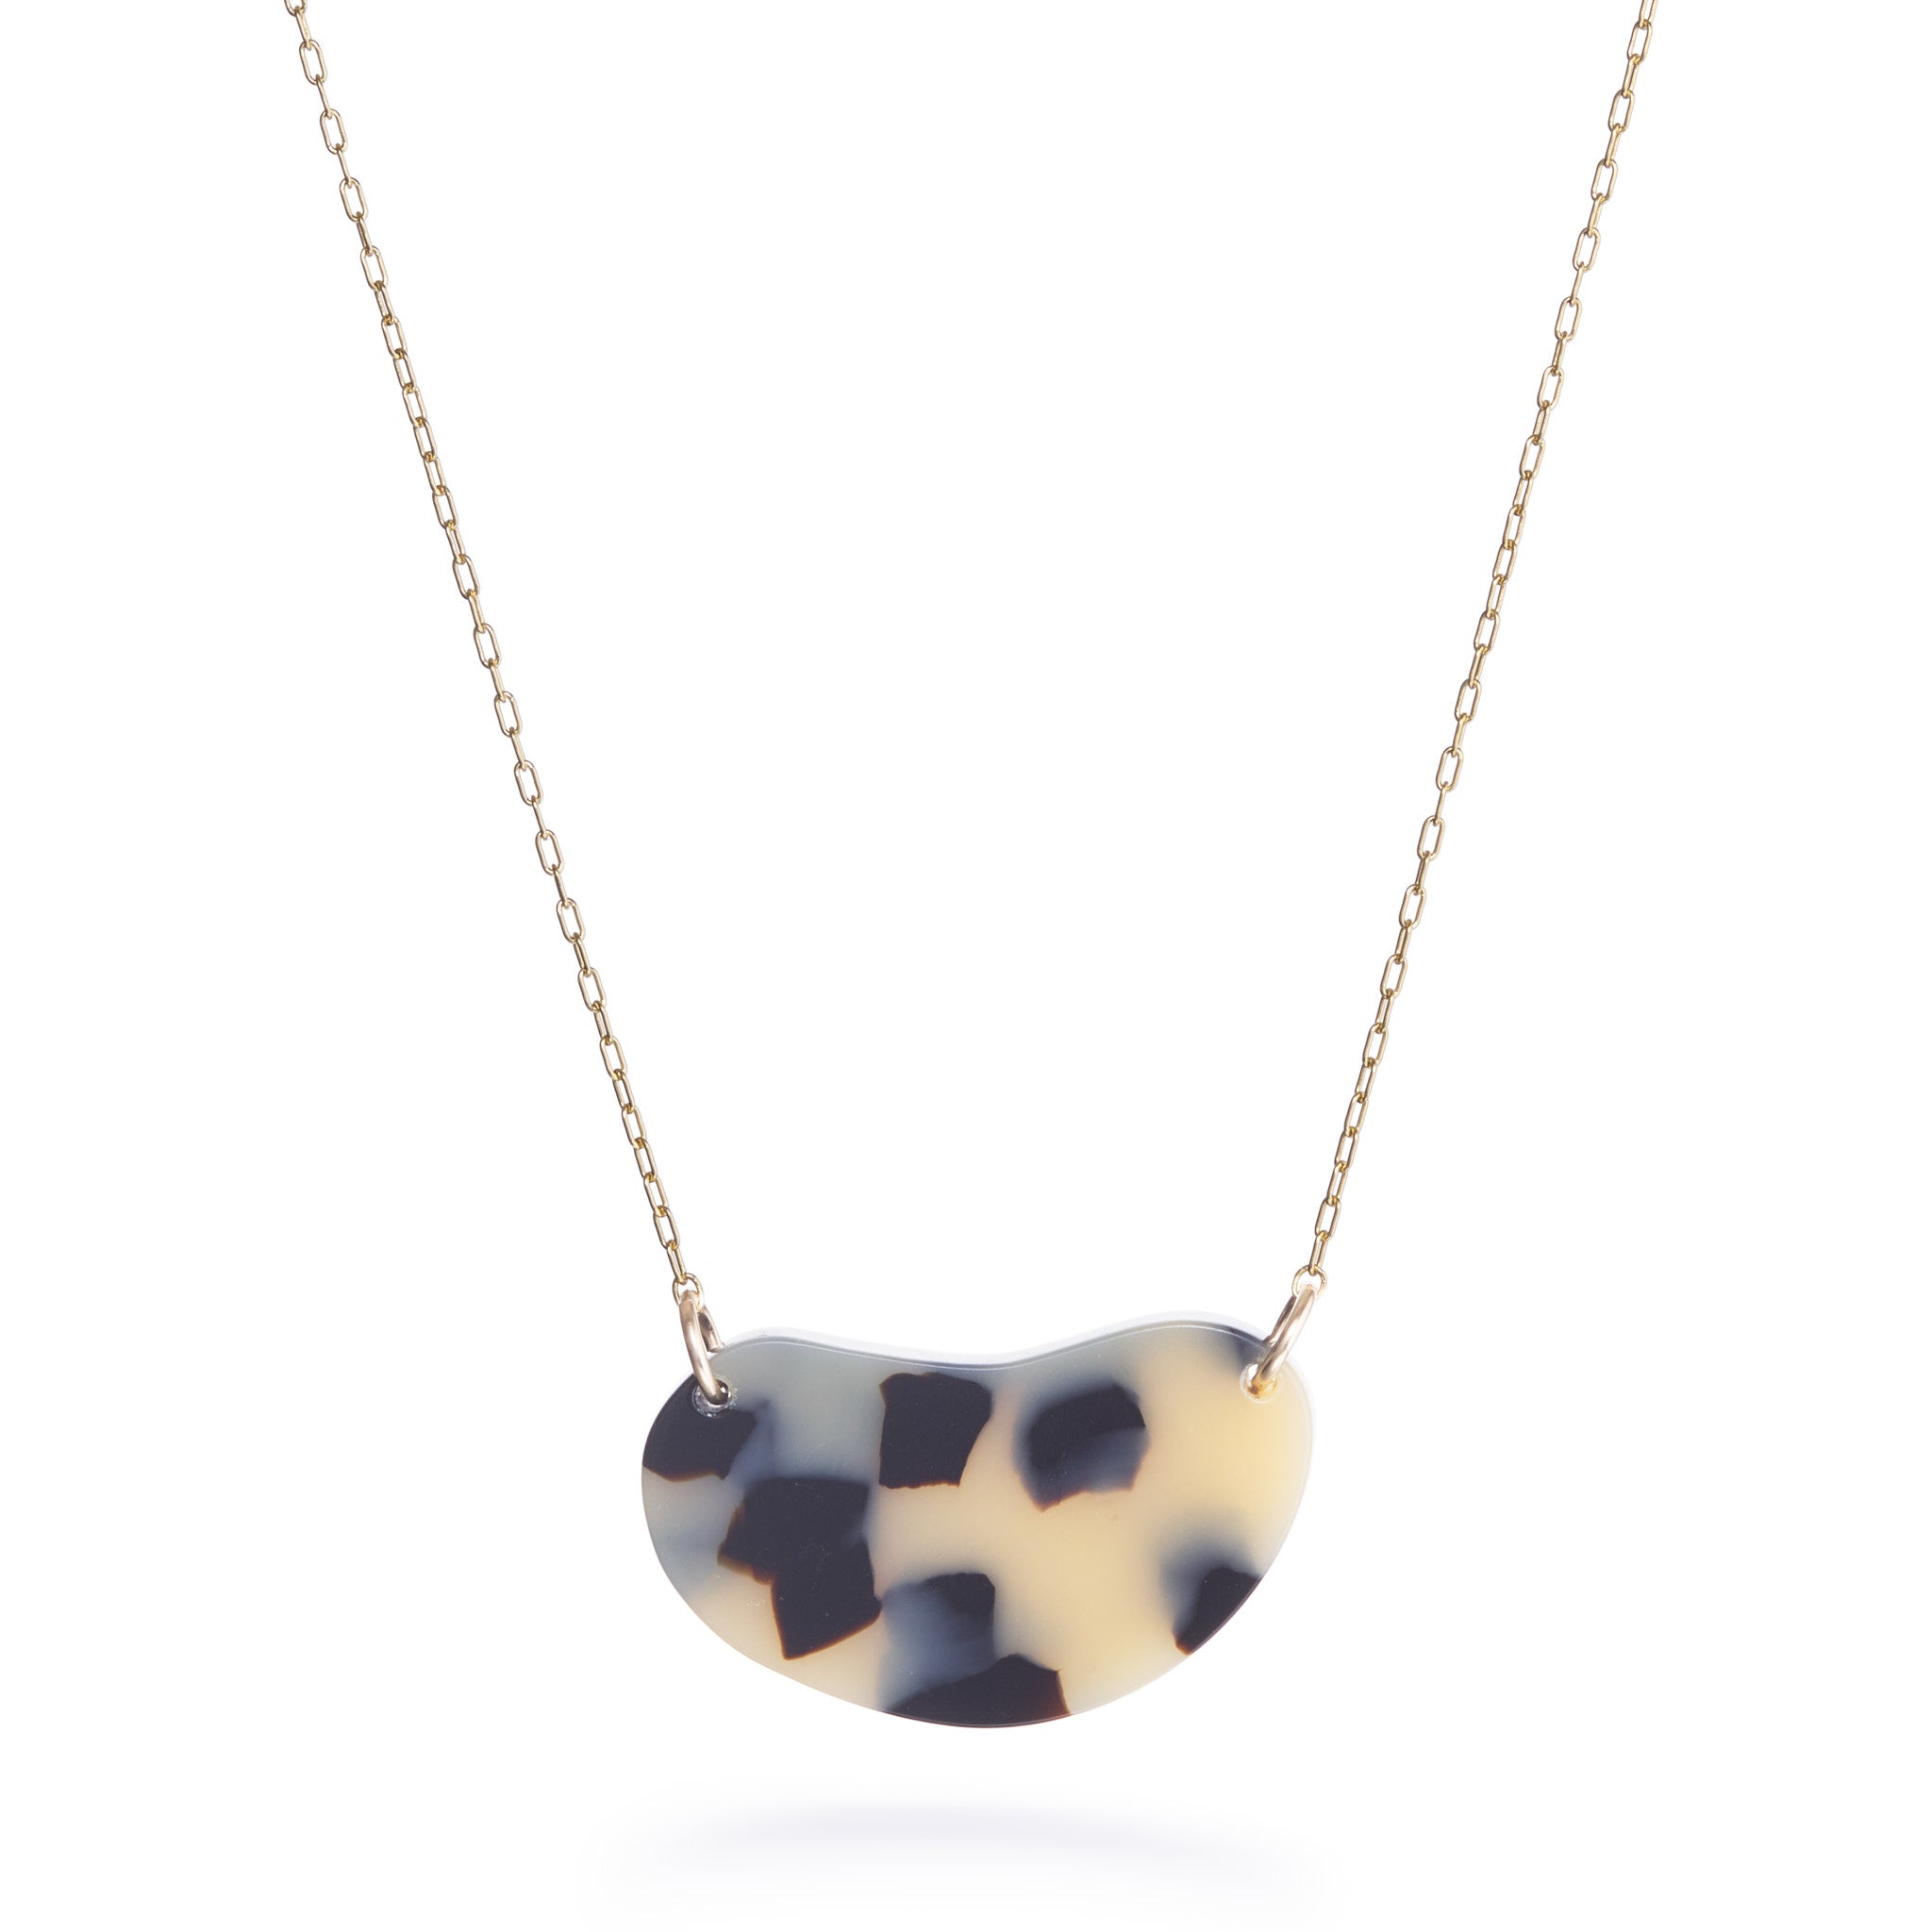 Zuki Necklace - Beige Tort